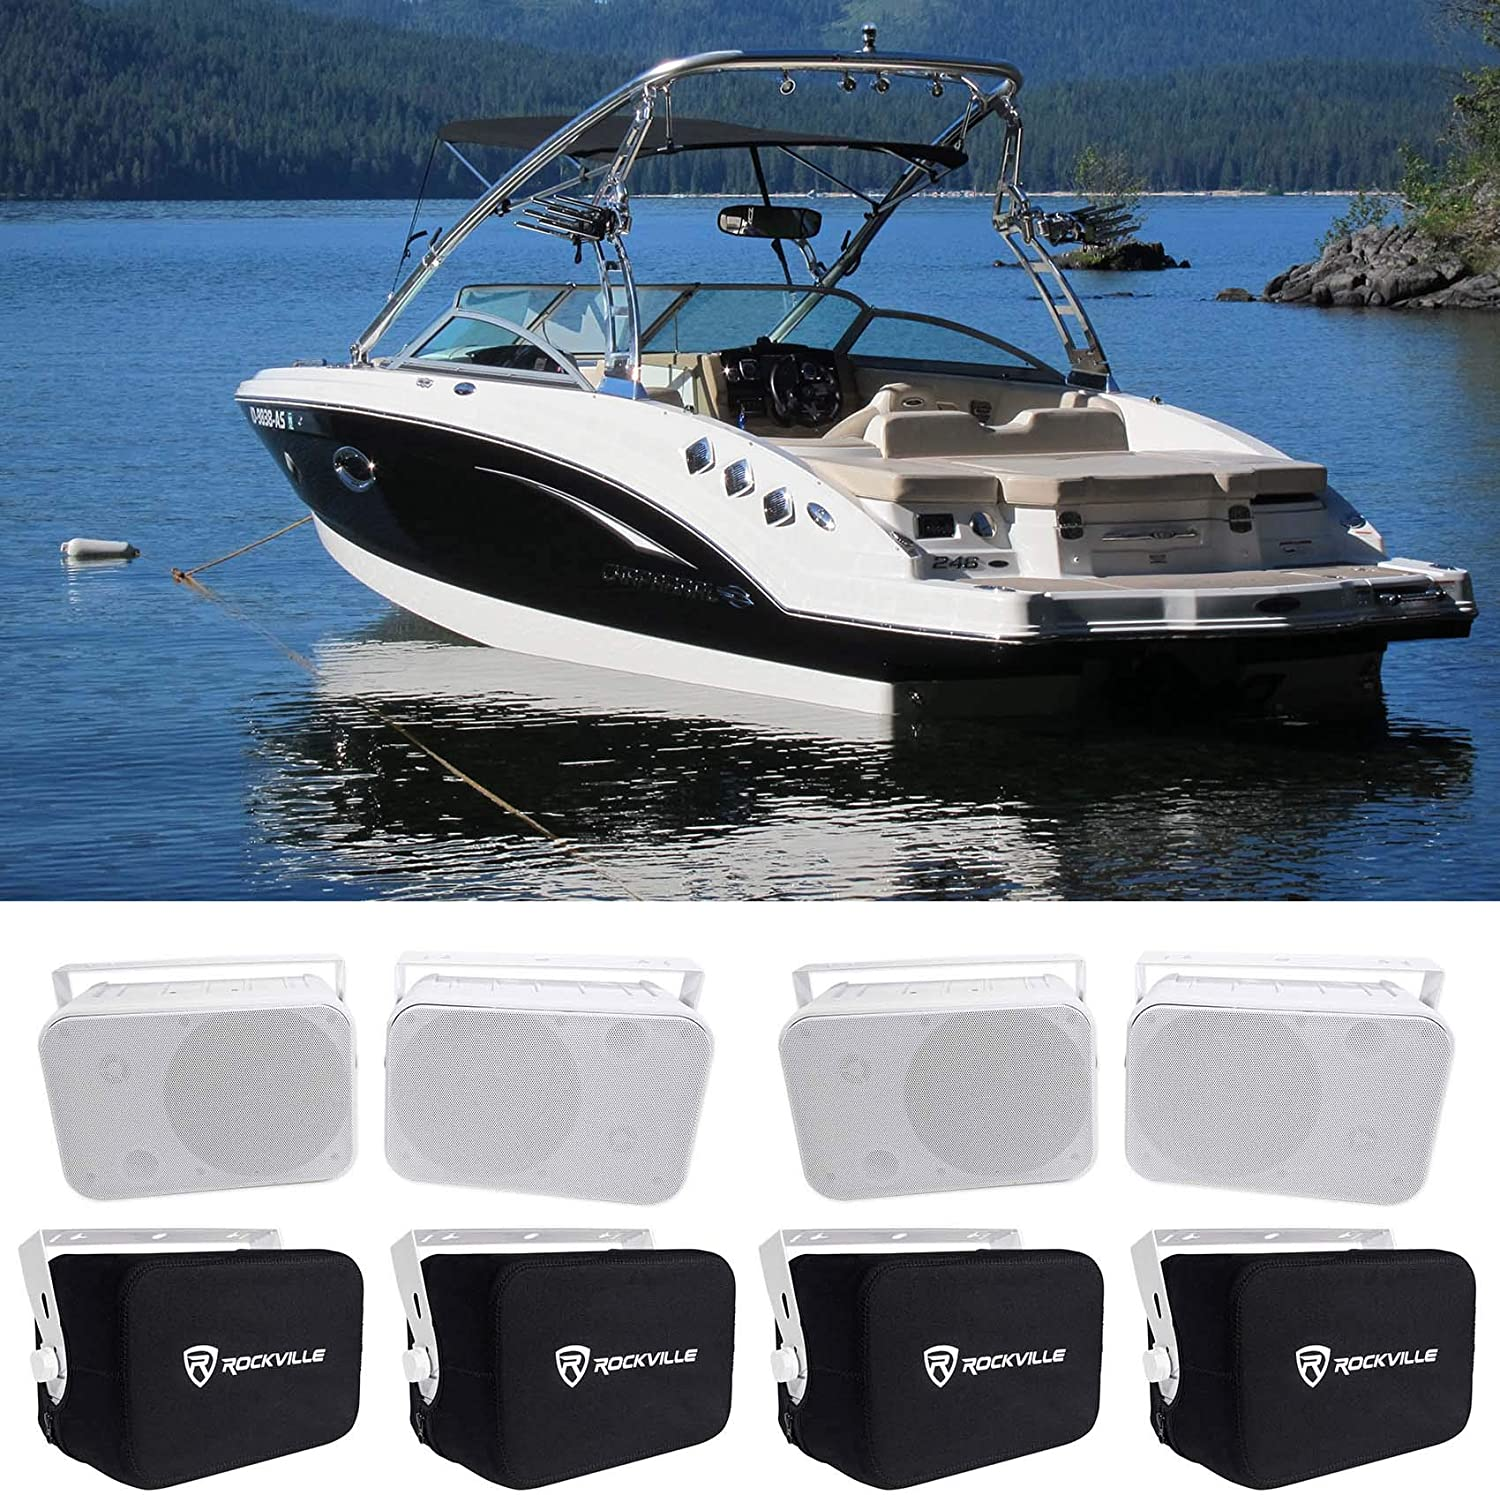 "(4) Rockville HP65S-8 6.5"" Marine Box Speakers+Swivel Brackets+Covers for Boats 81ncgFccb6LSL1500_"